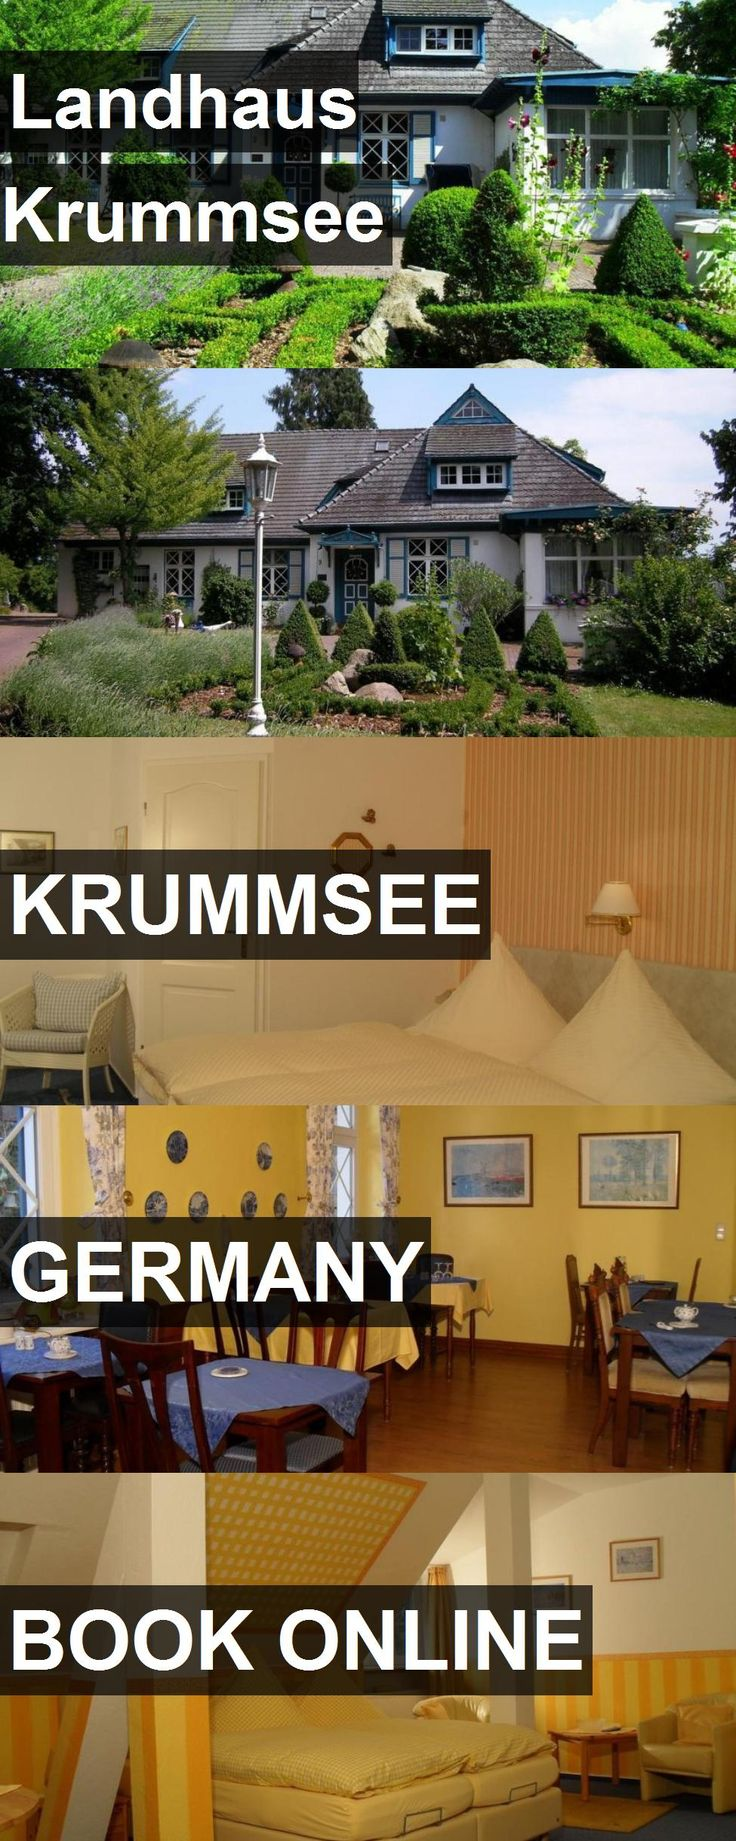 Hotel Landhaus Krummsee in Krummsee, Germany. For more information, photos, reviews and best prices please follow the link. #Germany #Krummsee #travel #vacation #hotel